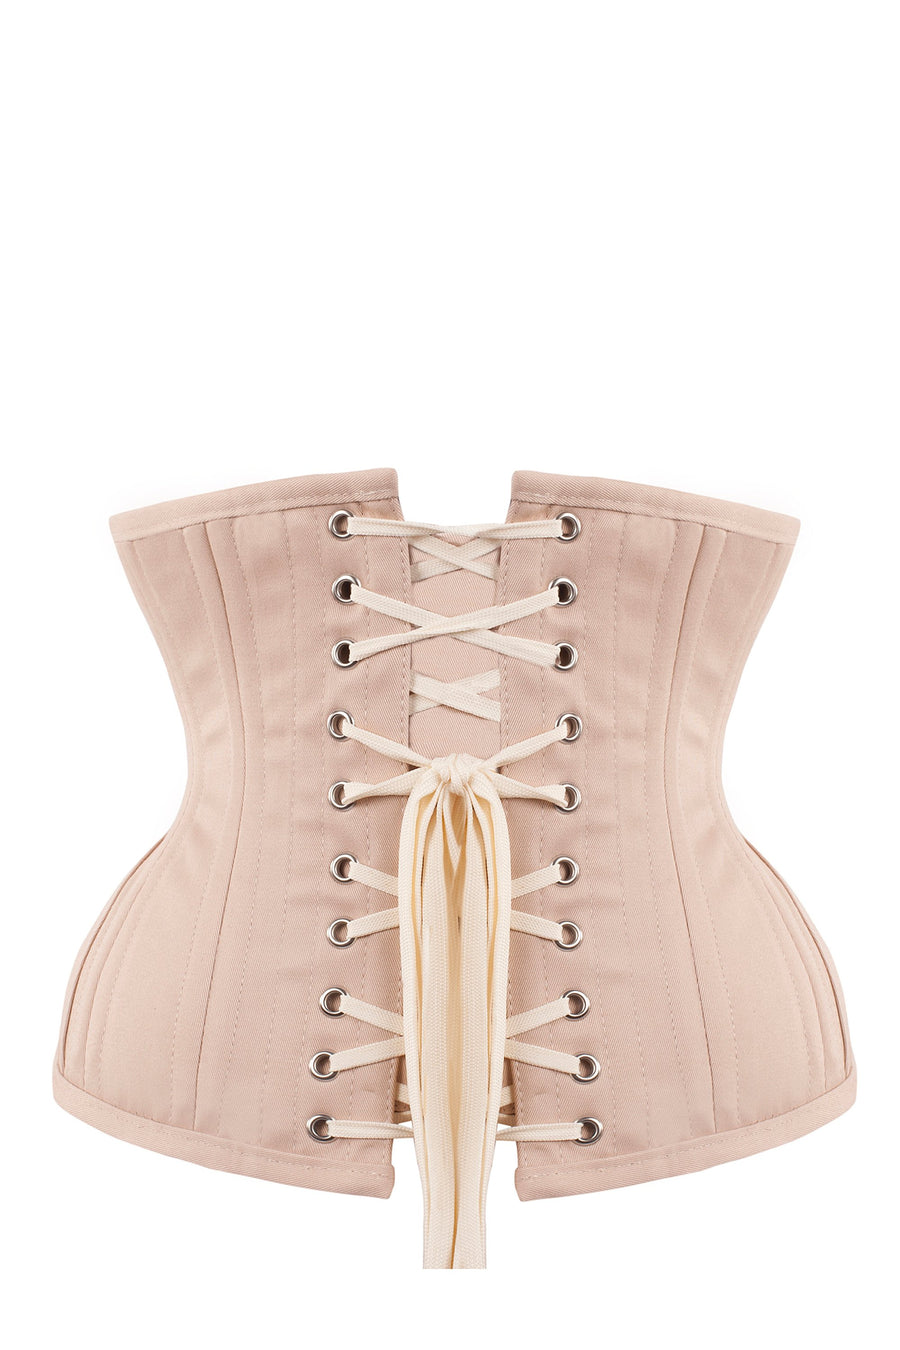 Underbust Waist Trainer In Pinky Beige Cotton Twill- Curved Hem And Hip Panels